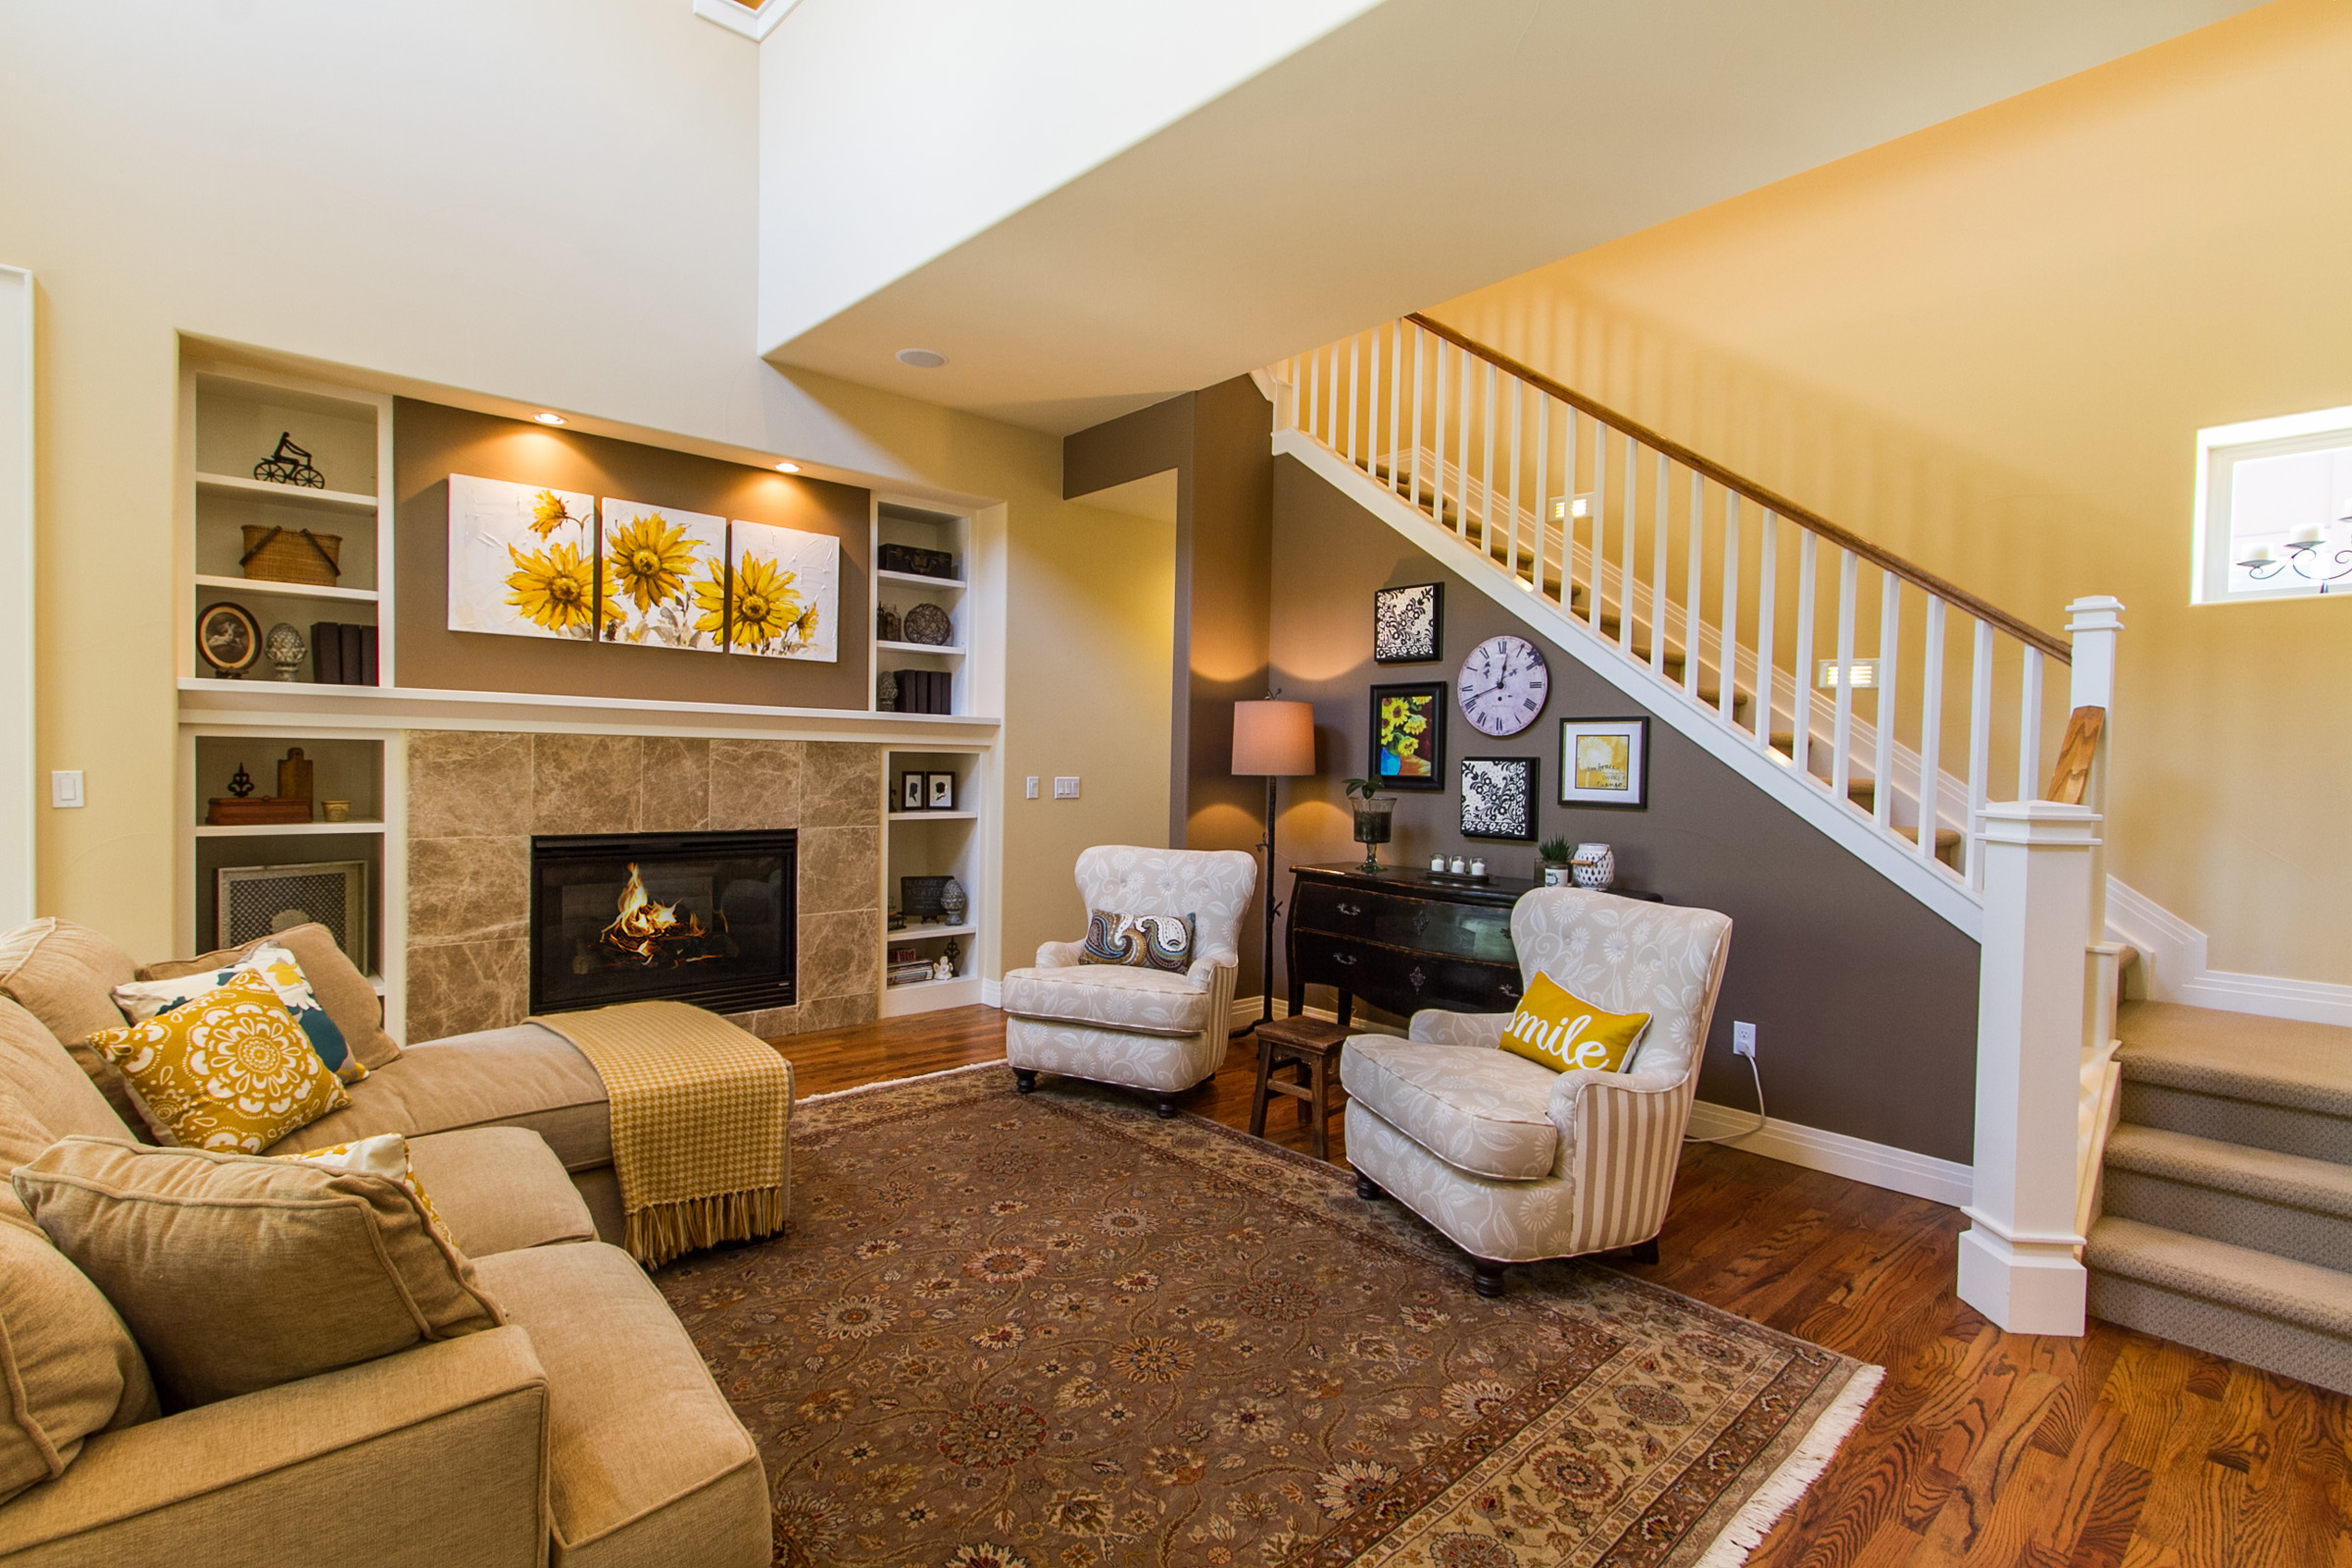 1311305_Gas-Fireplace-And-Built-ins-In-Great-Room_high.jpg